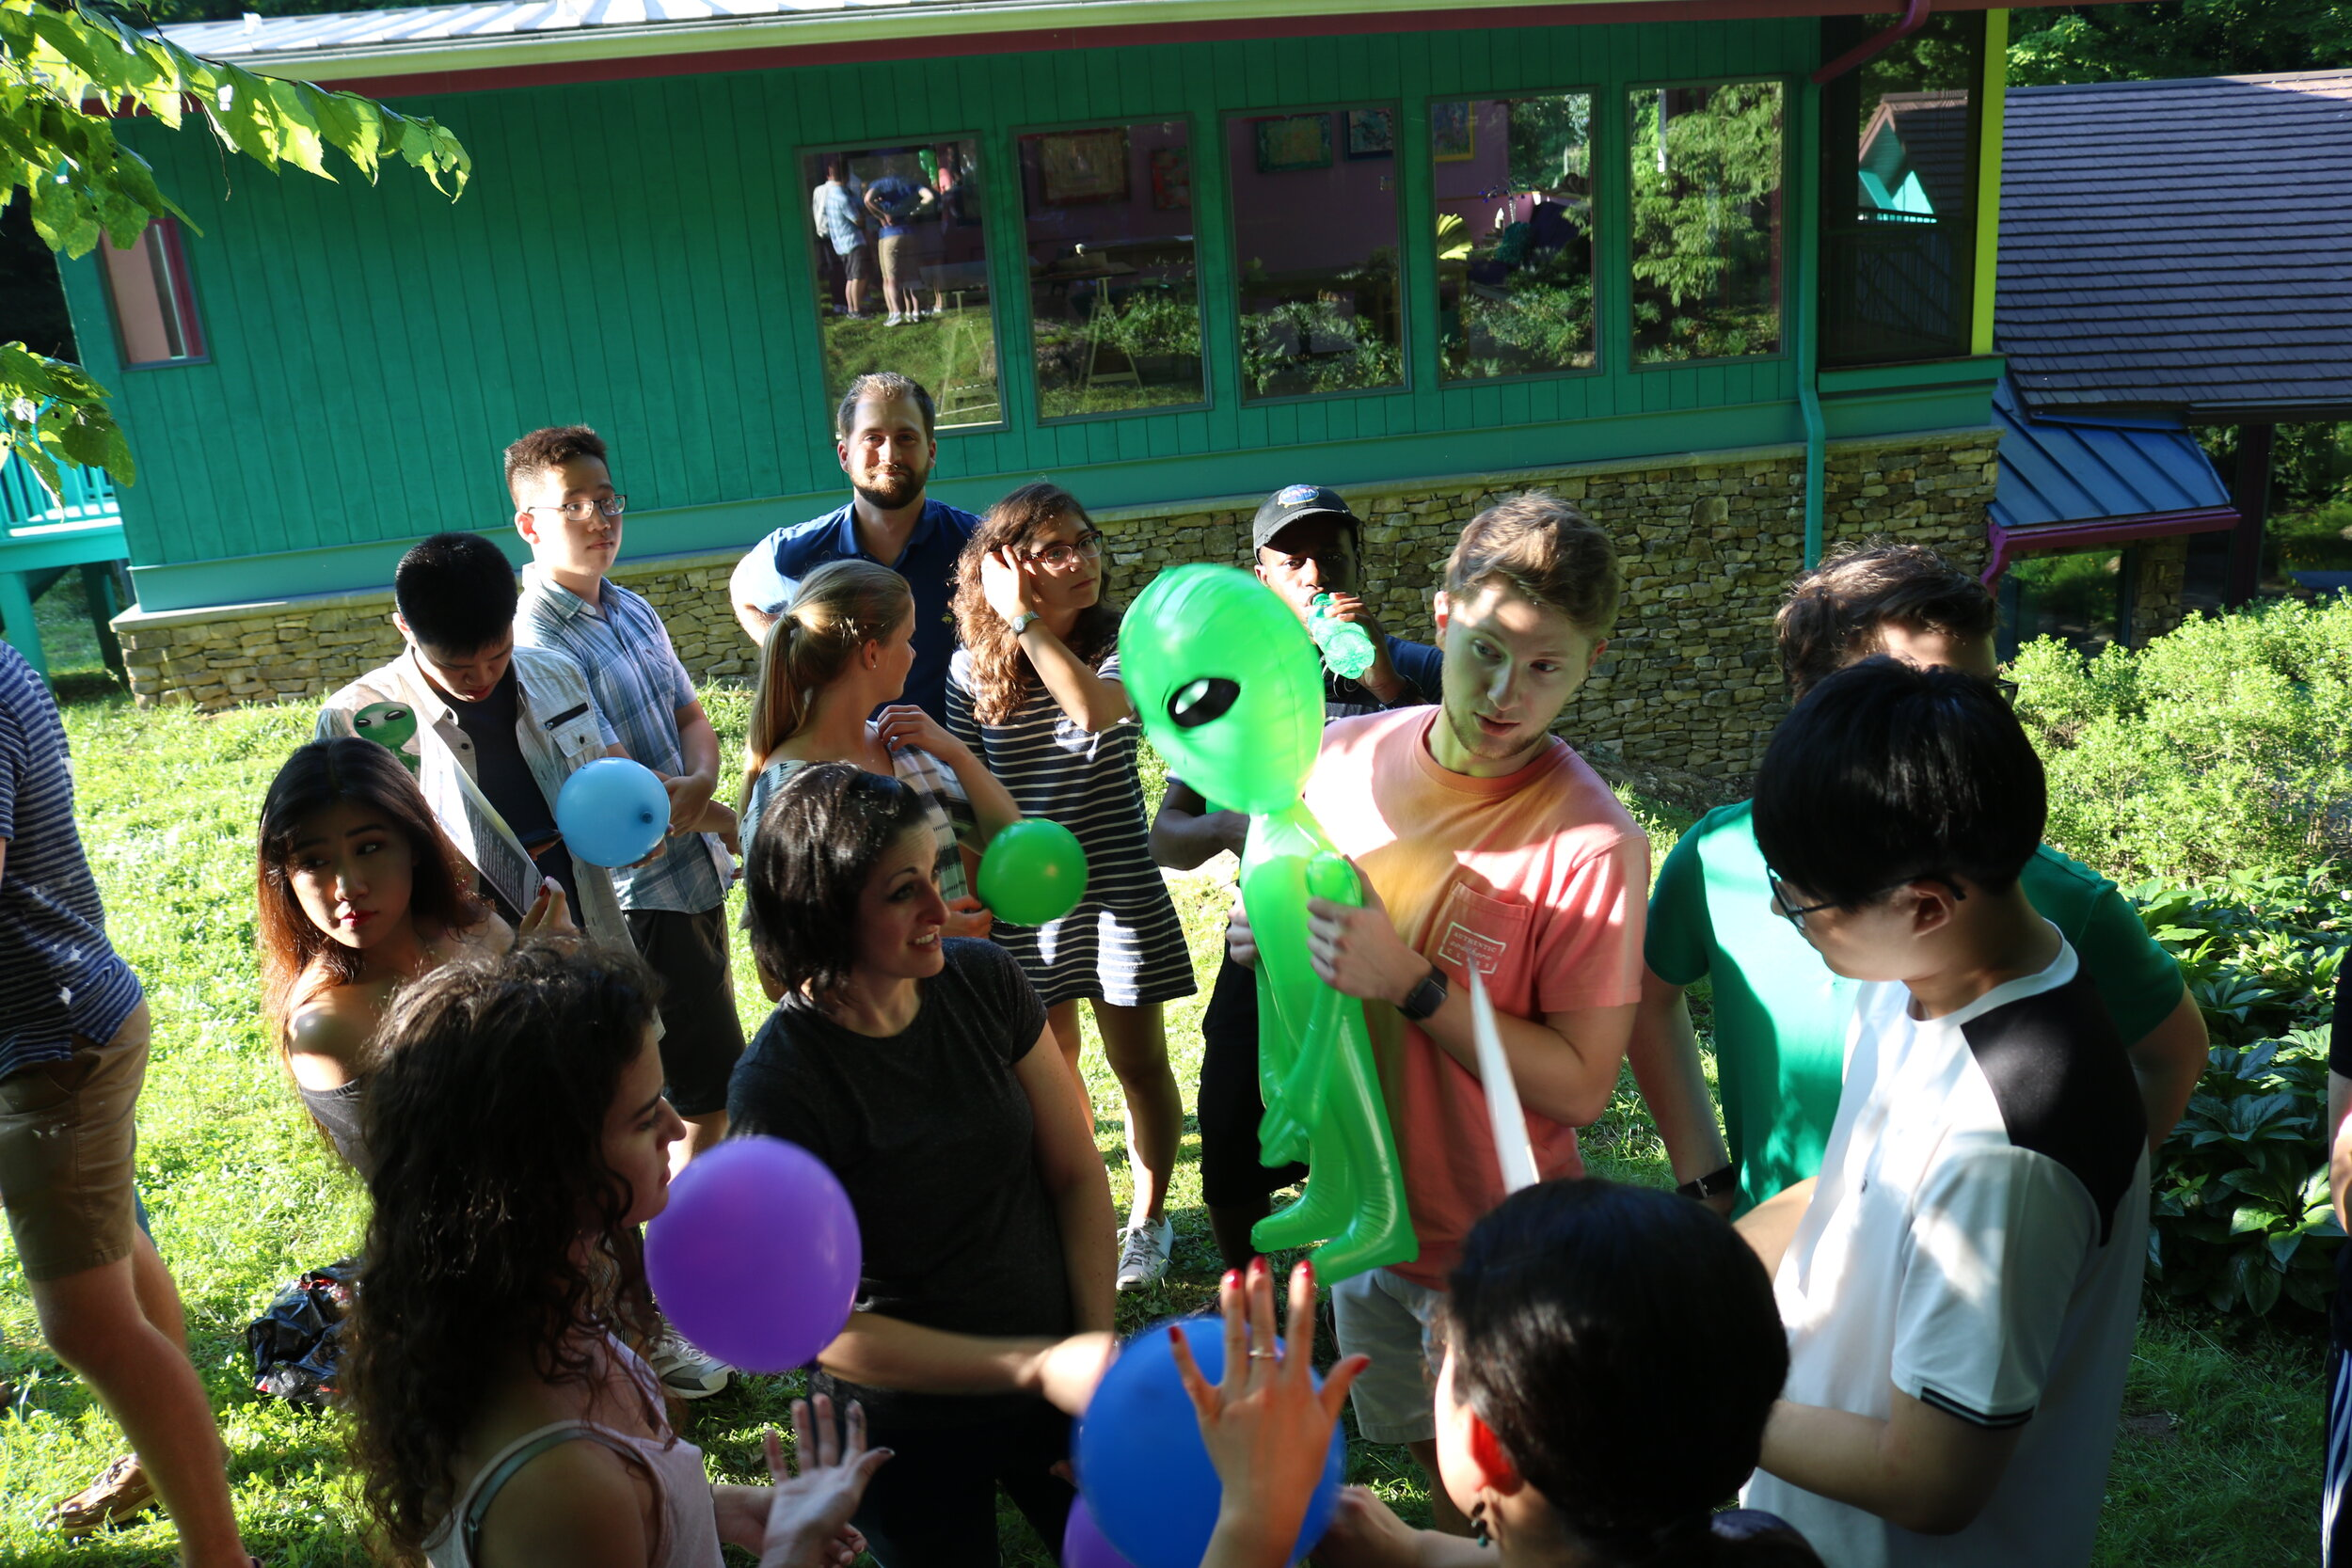 House competition games at our 2018 summer launch party, featuring our alien friend.